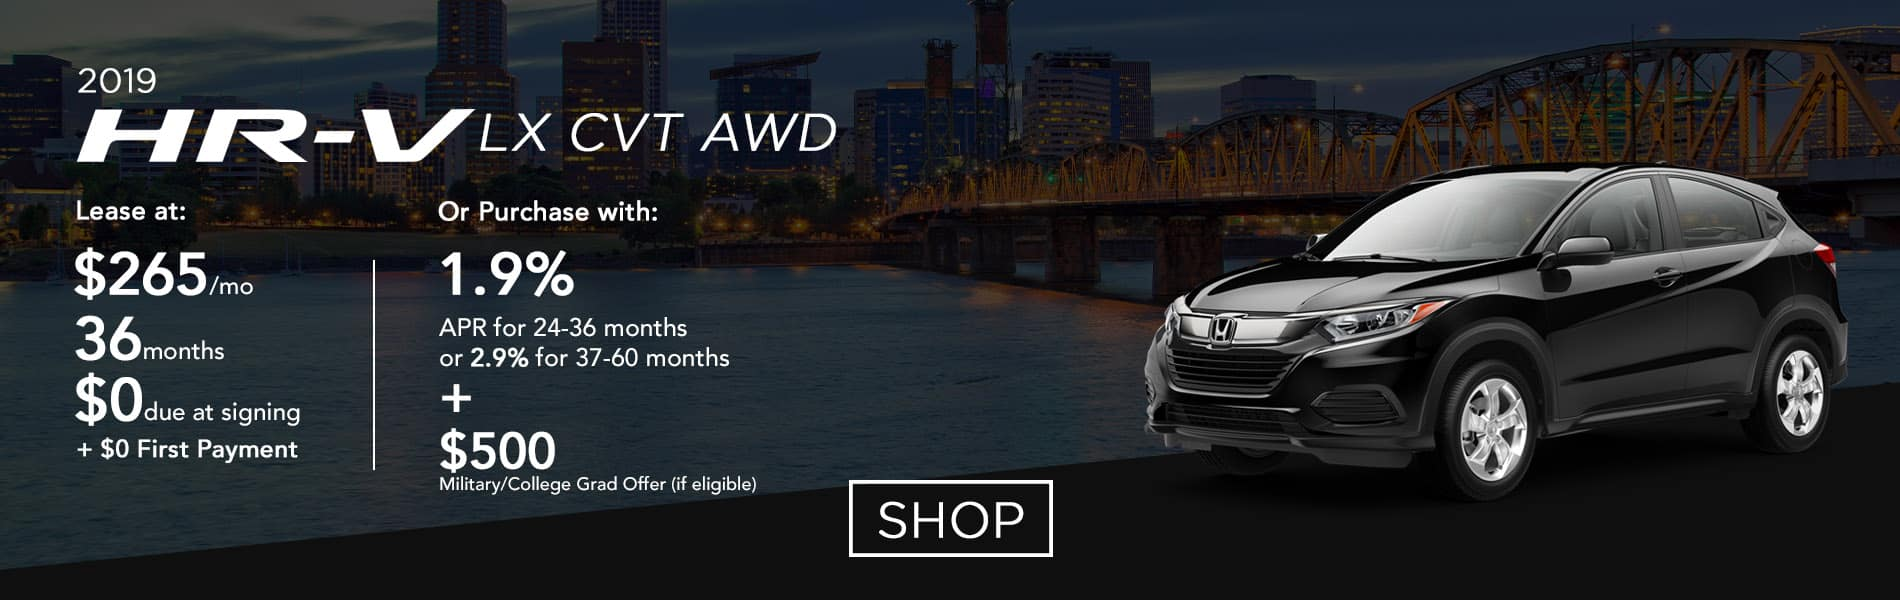 Lease a 2019 HR-V LX CVT AWD for $265 per month or purchase with 1.9% APR up to 36 months